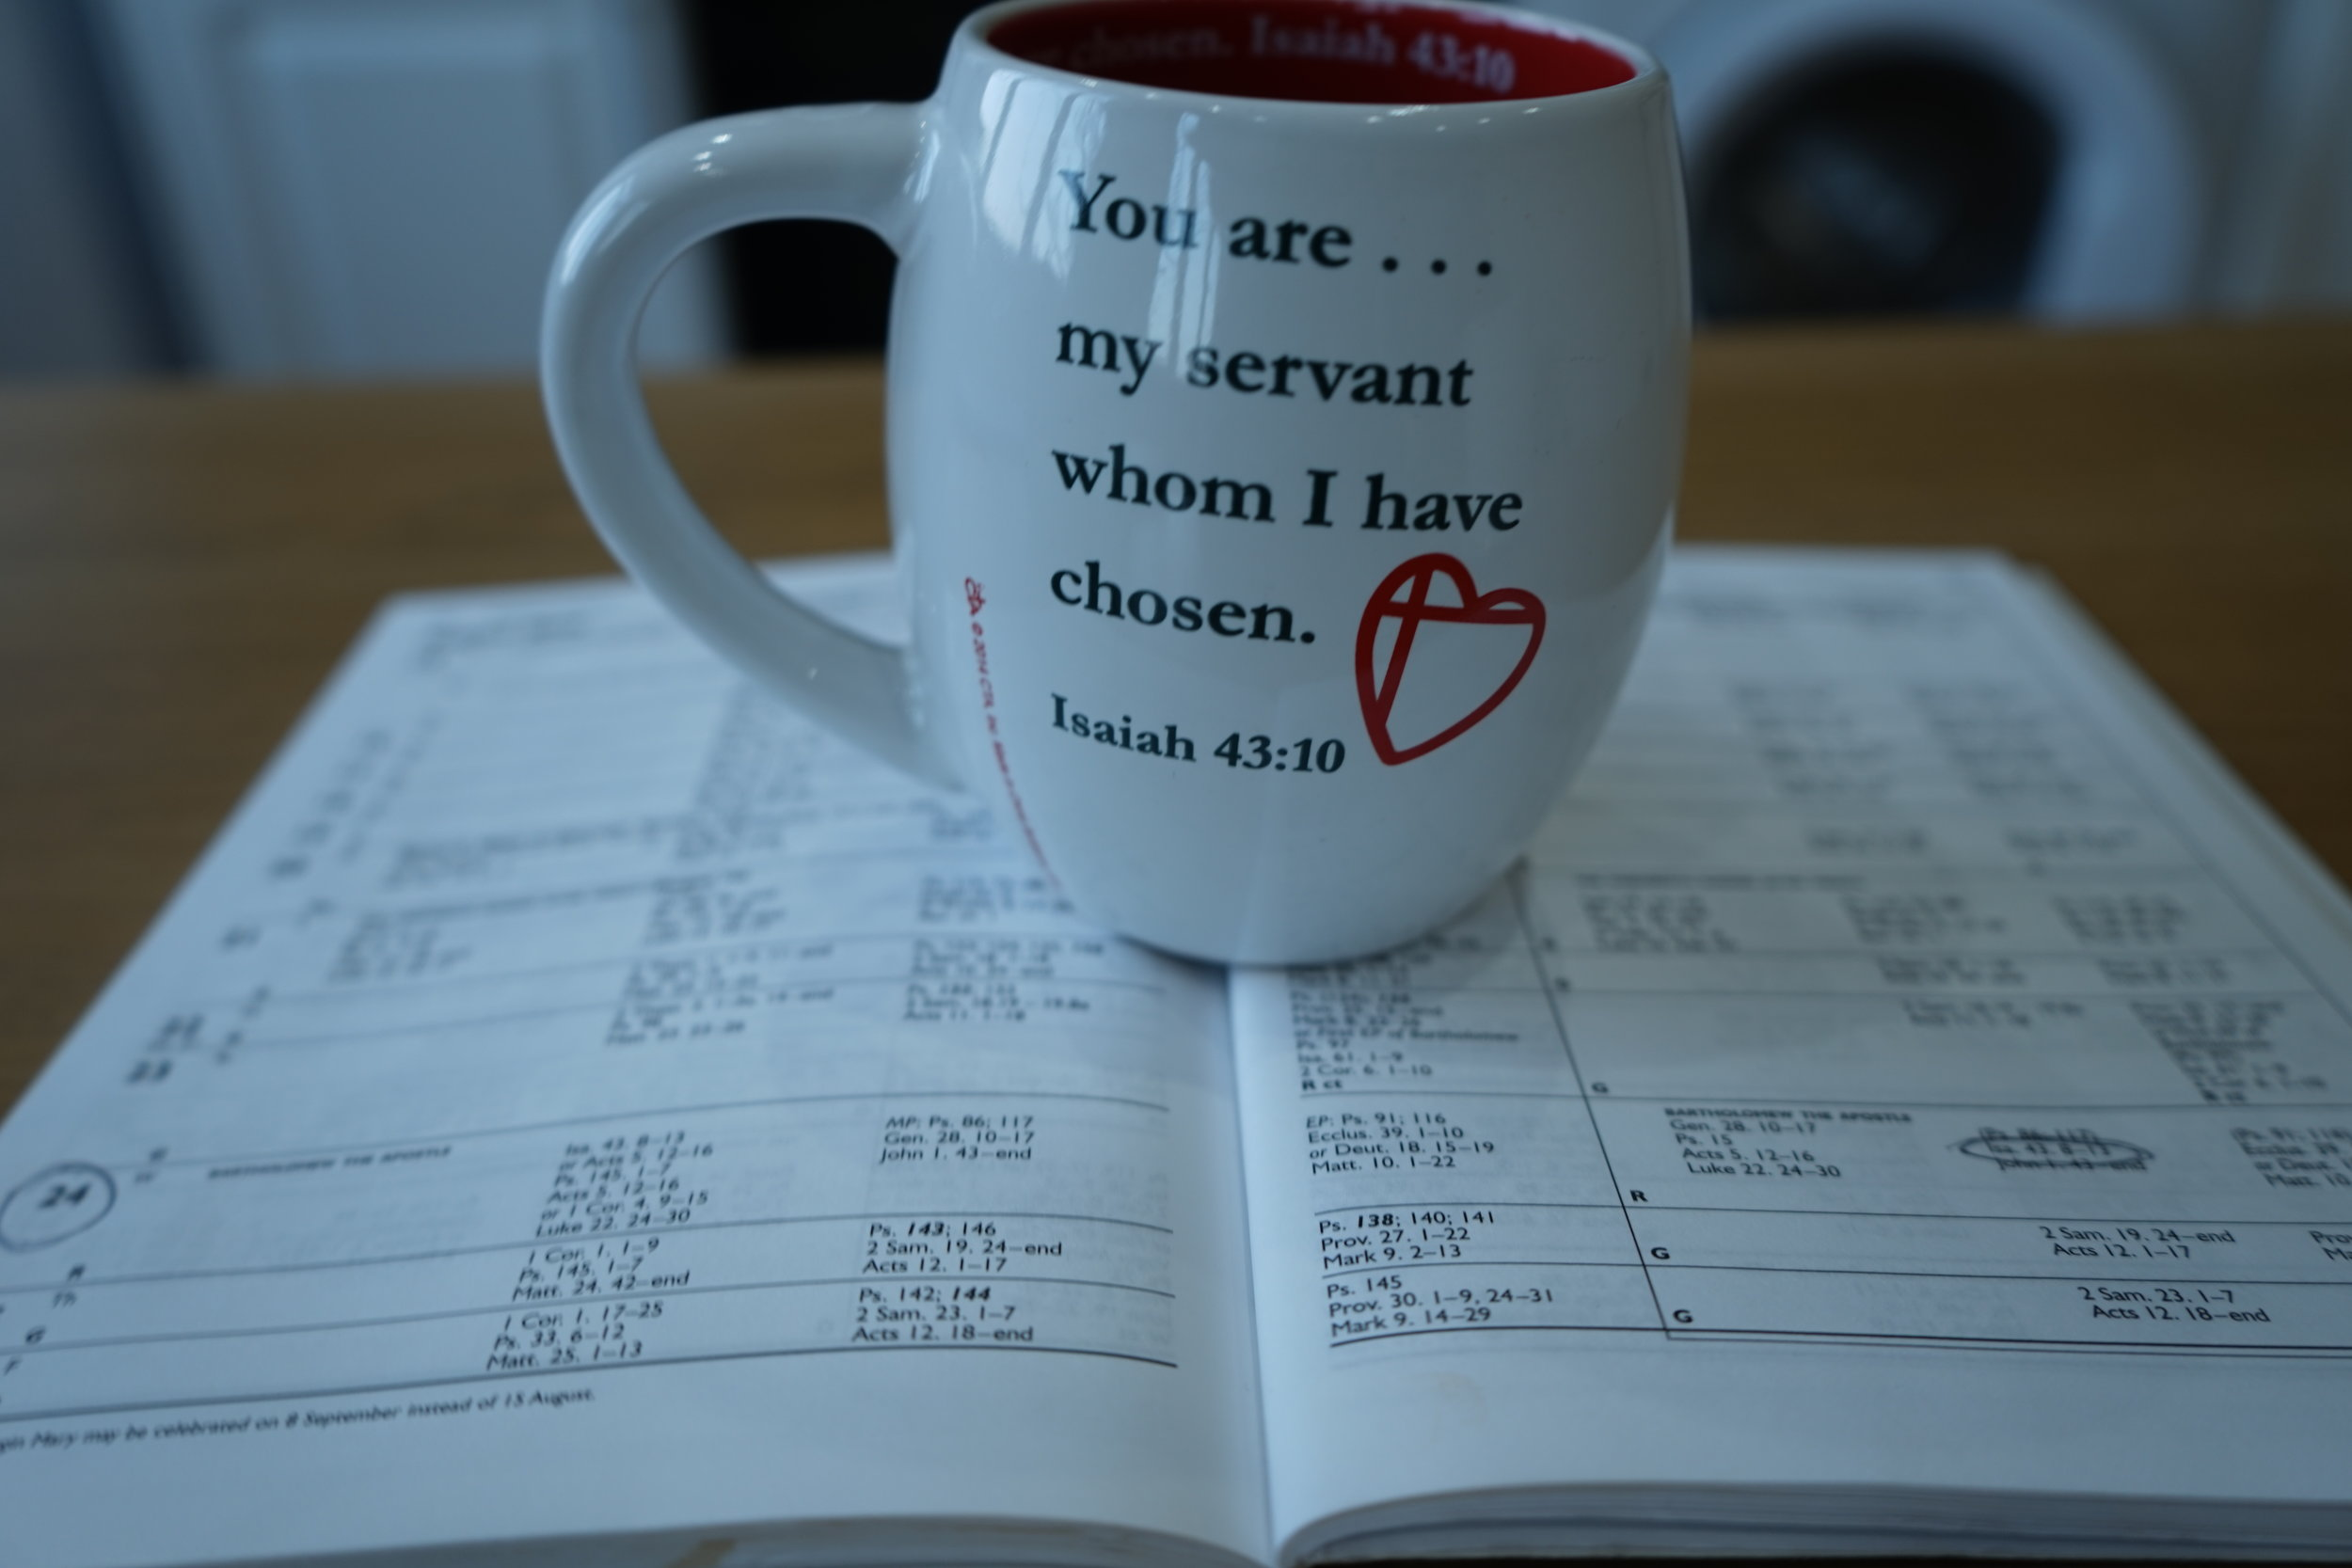 P.S. Here's the photographic evidence of what I mentioned in the audio training...The mug & the Bible reading! Confirmation indeed.